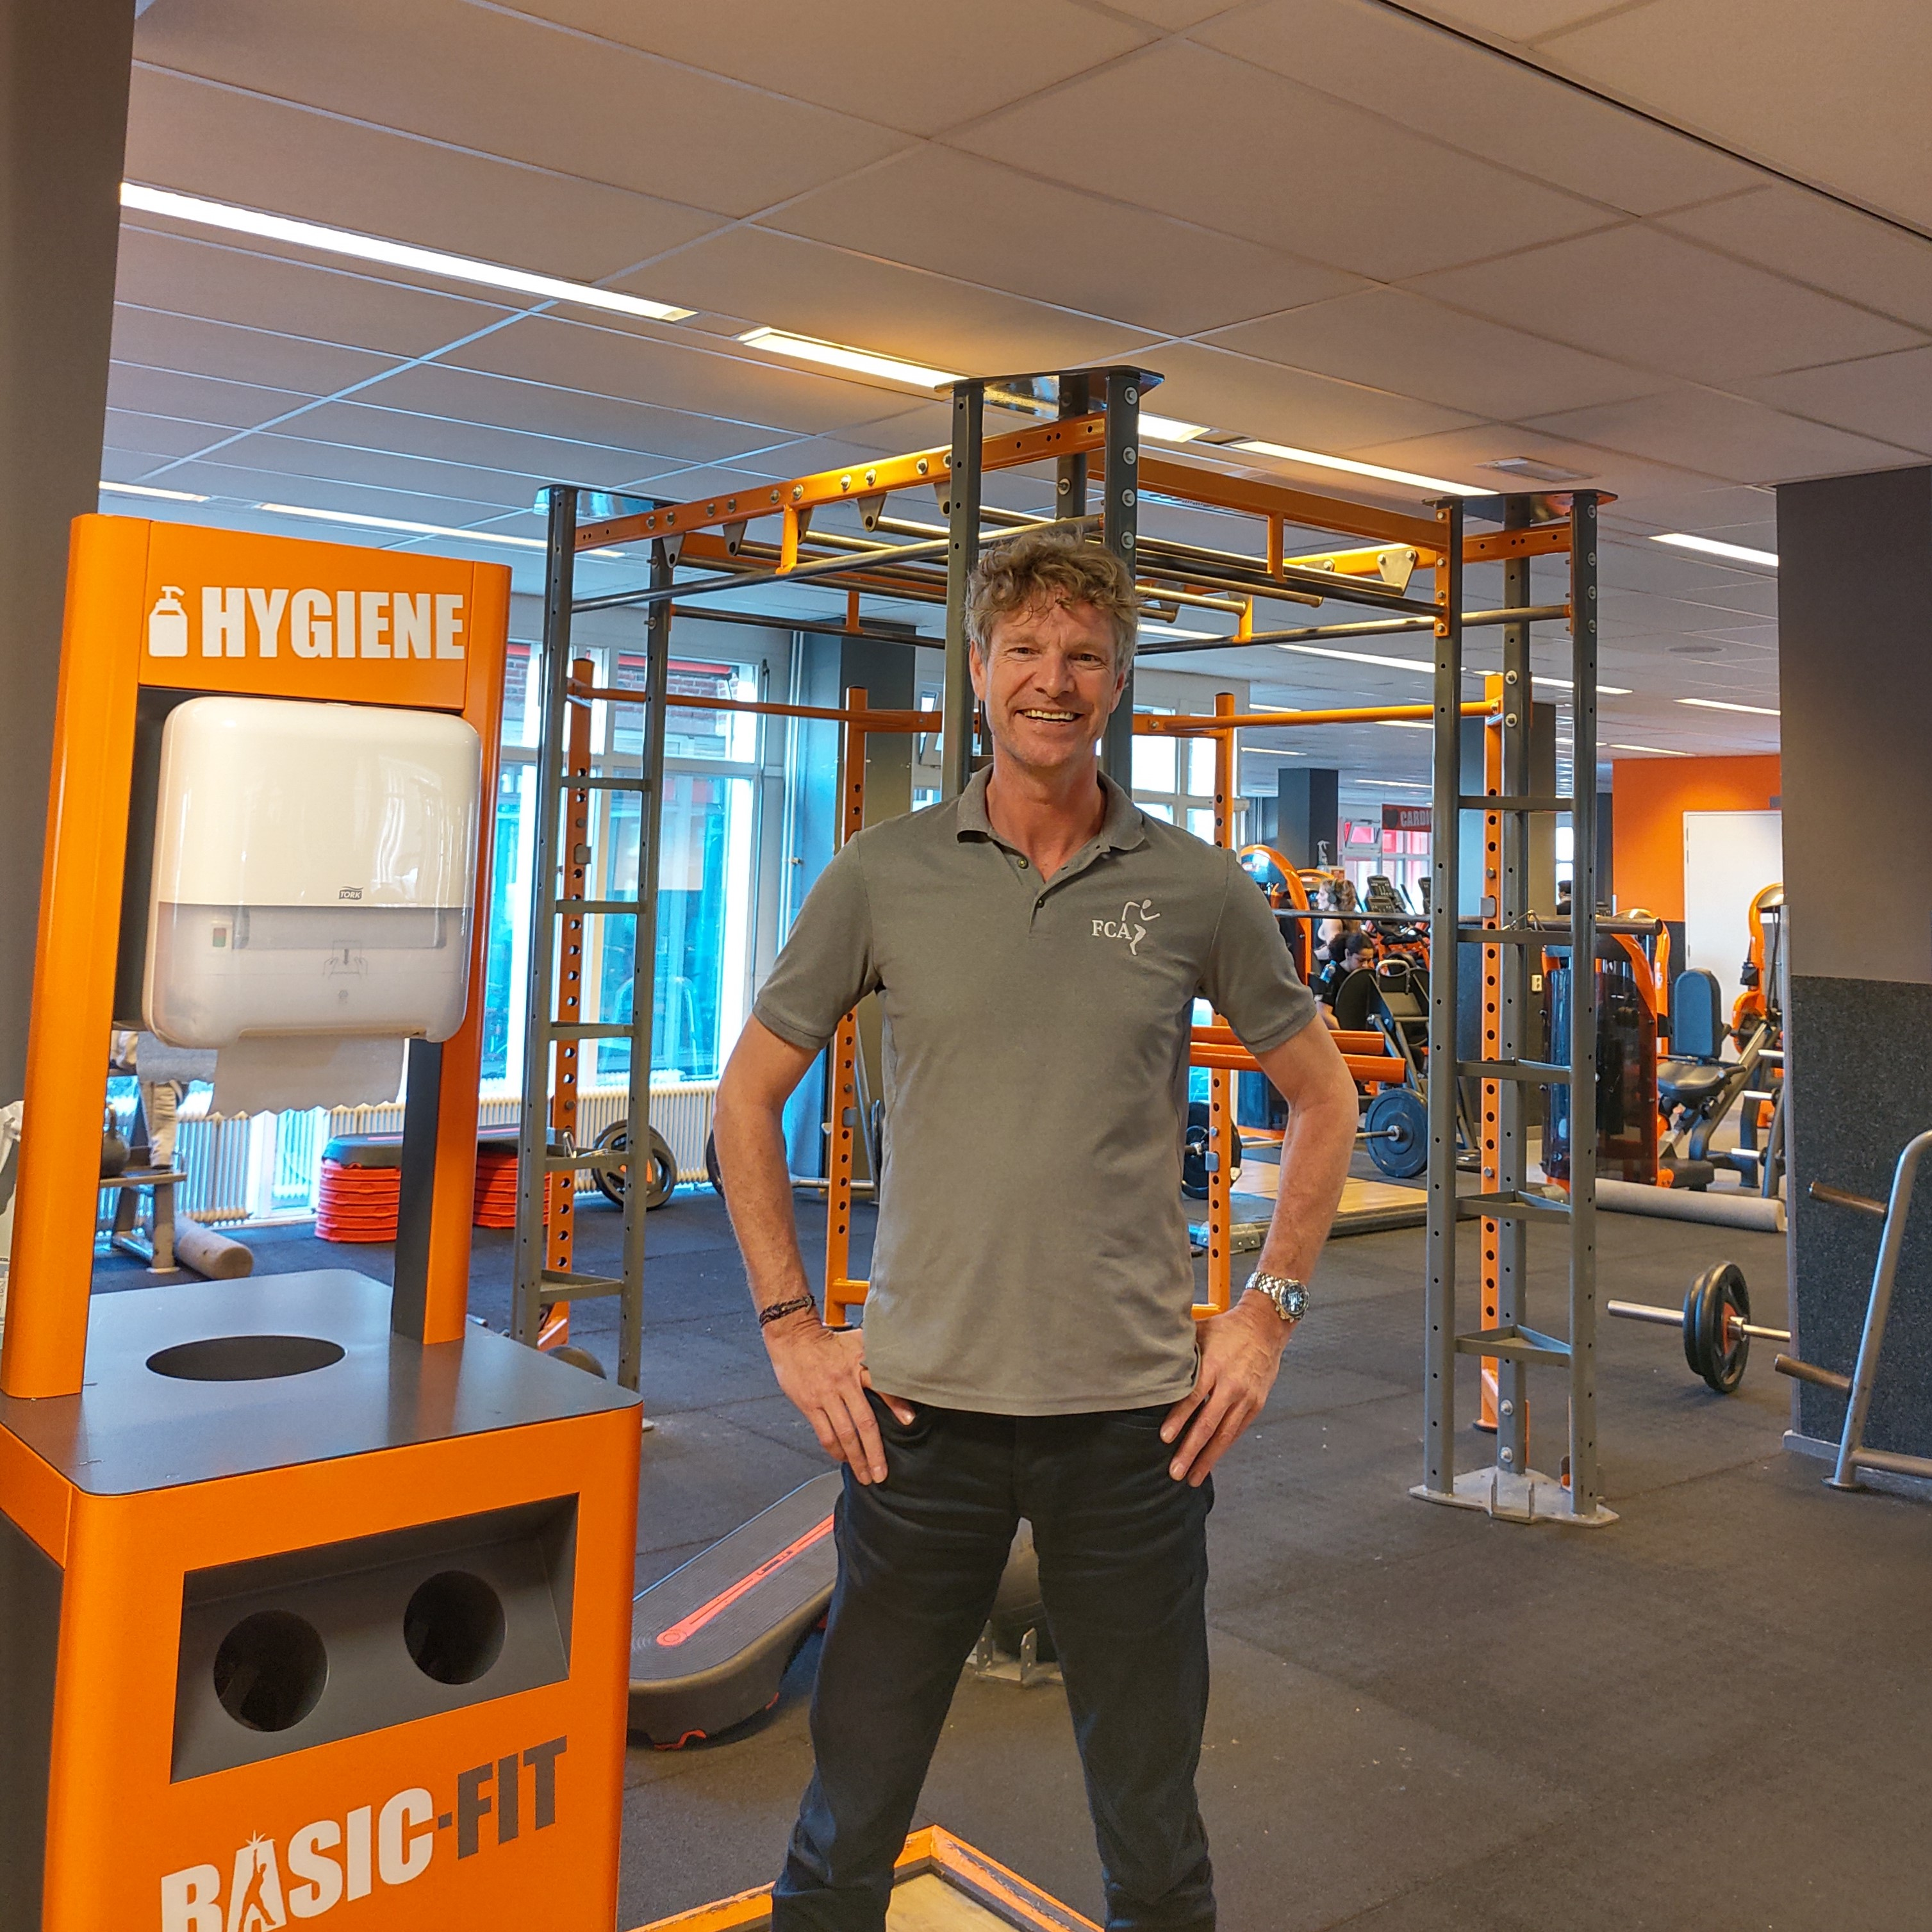 Sportschool Amsterdam Amstelstraat - photo 22